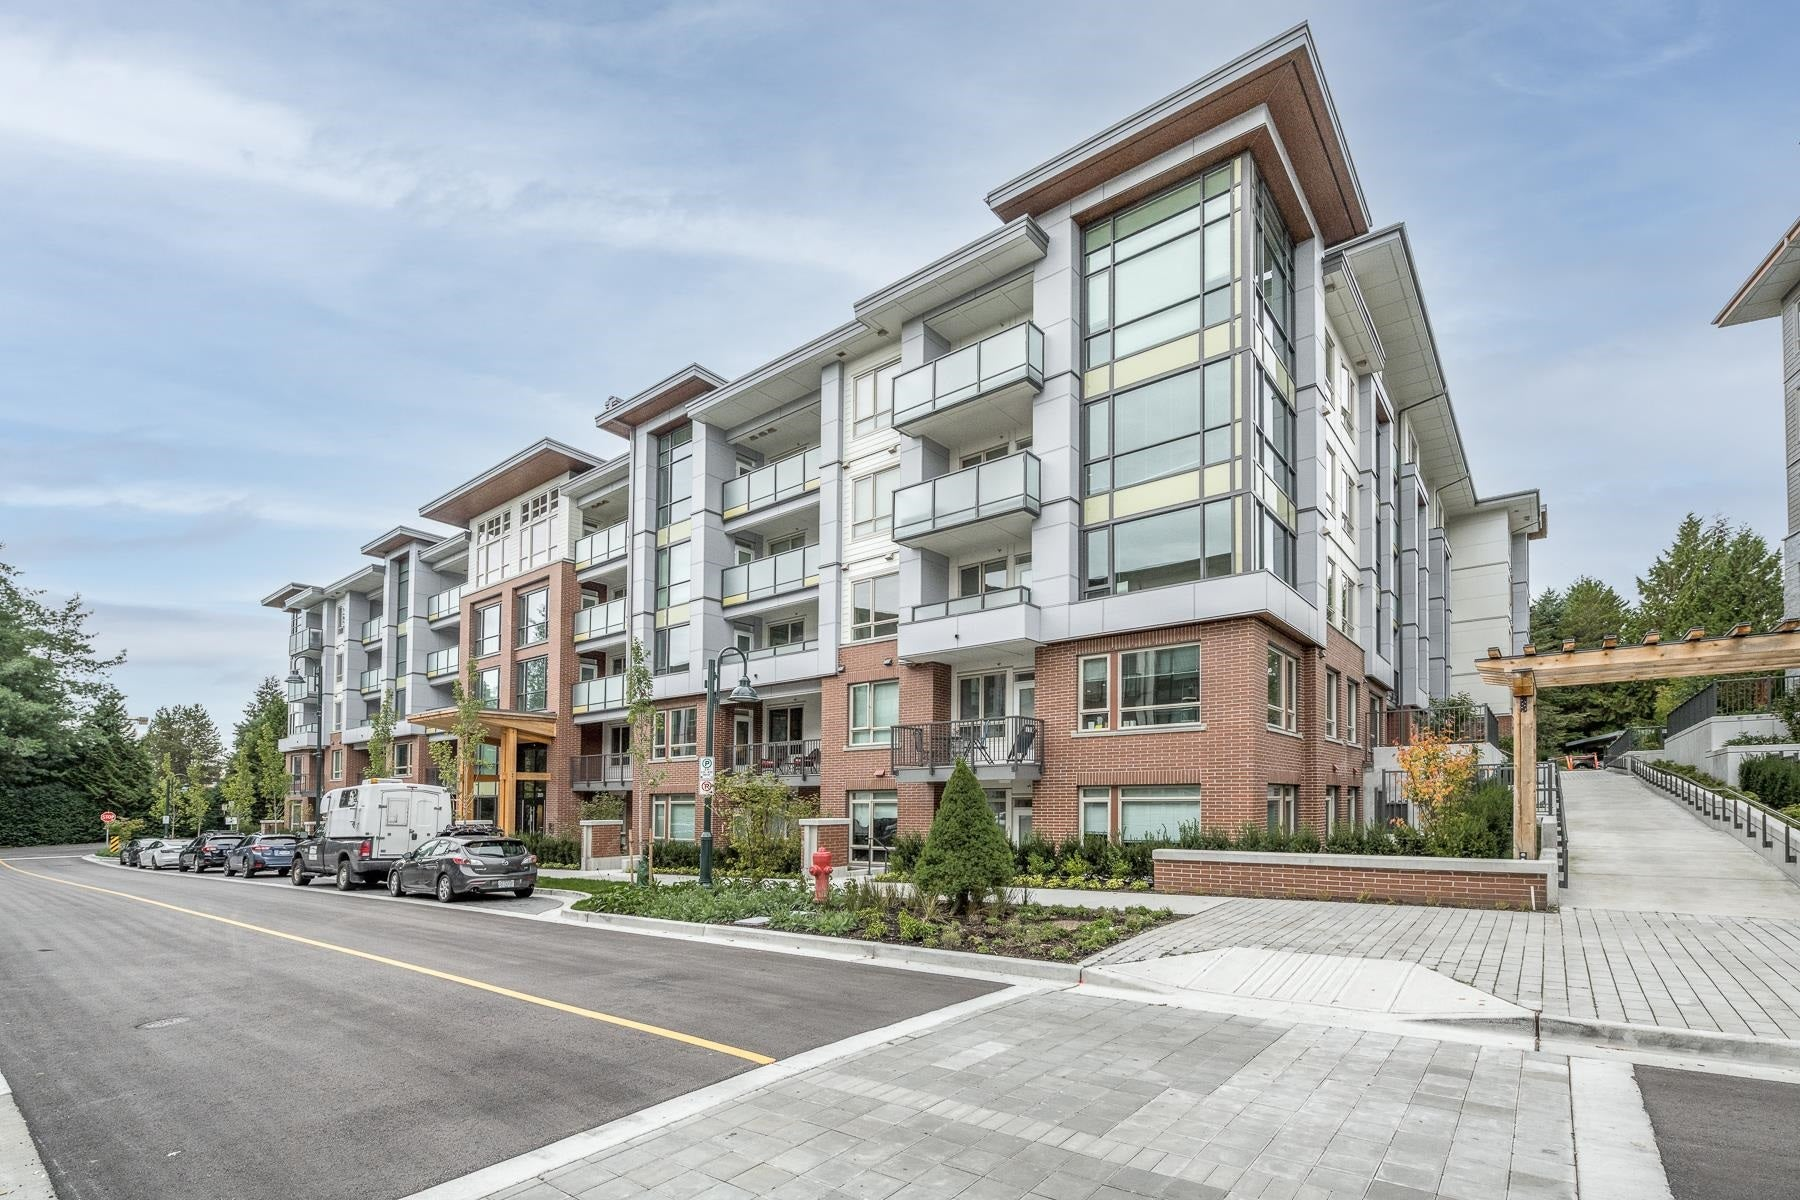 219 2651 LIBRARY LANE - Lynn Valley Apartment/Condo for sale, 2 Bedrooms (R2623232)